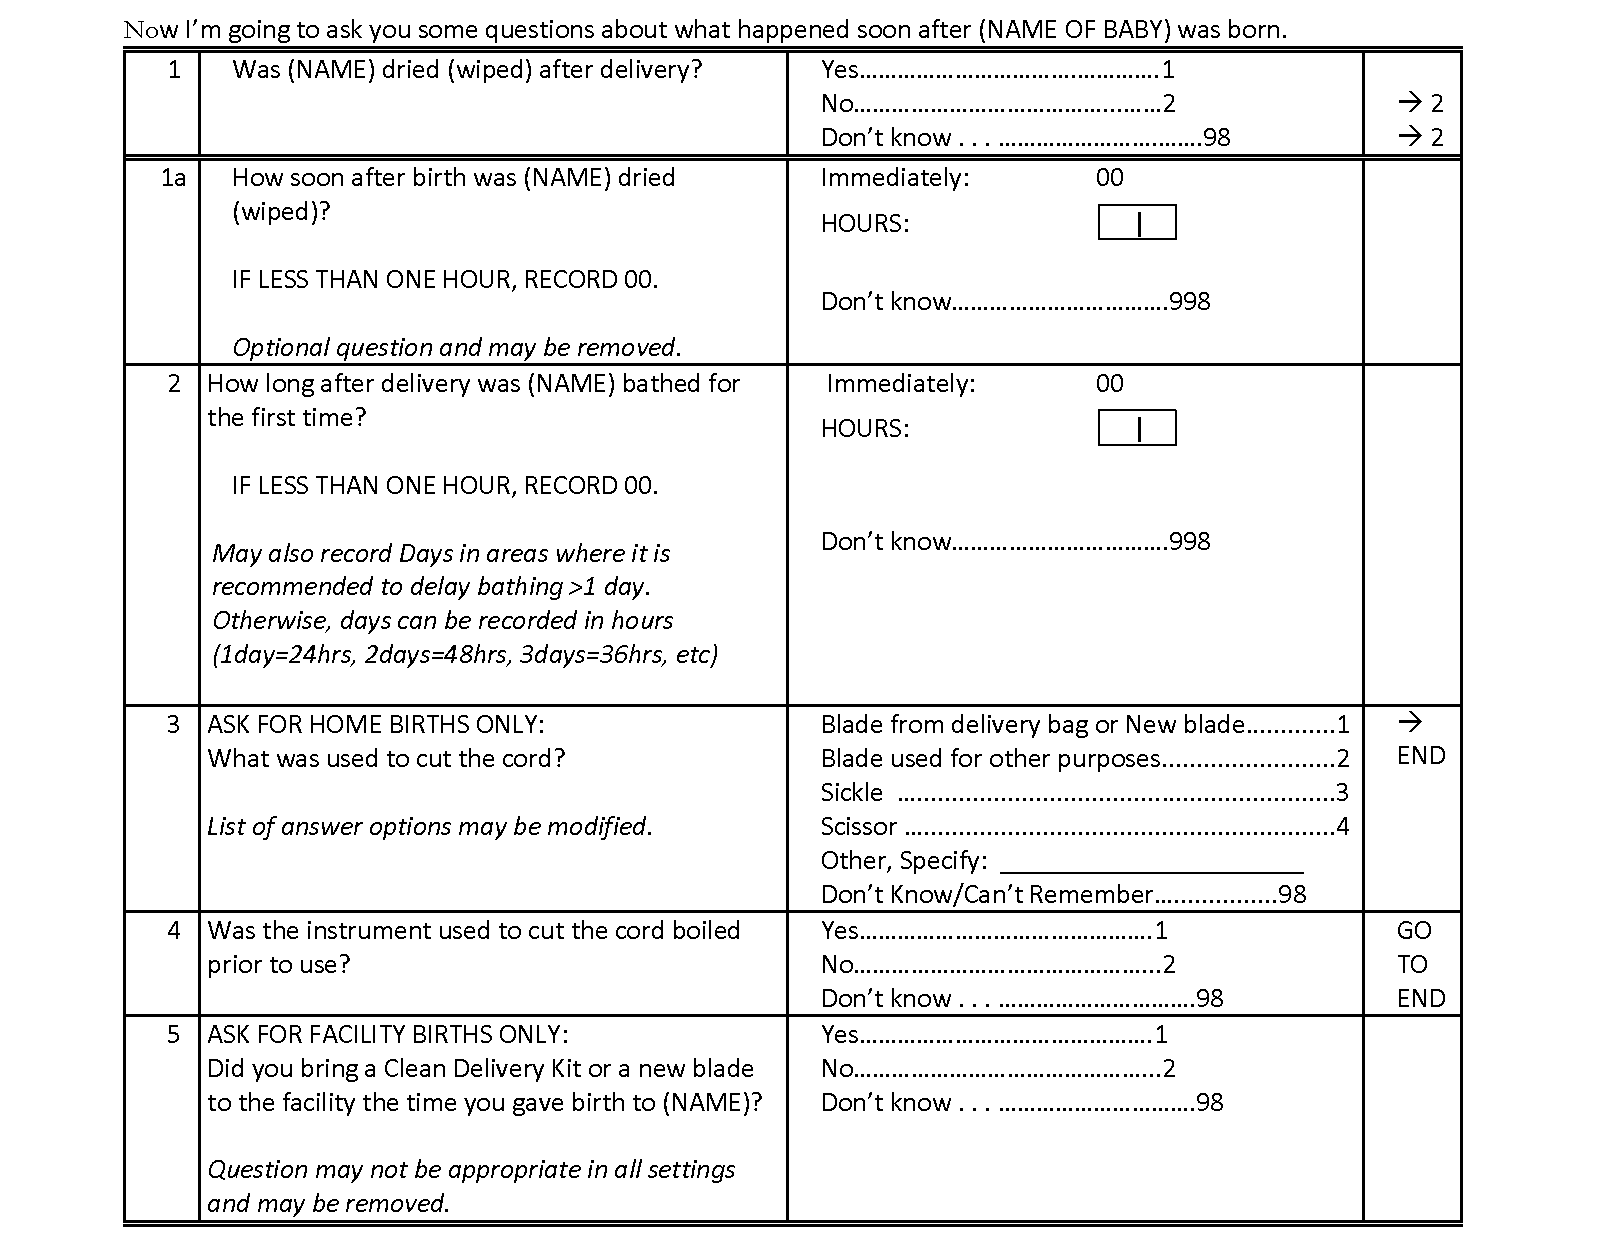 Standard questionnaire for measuring coverage of immediate newborn care.